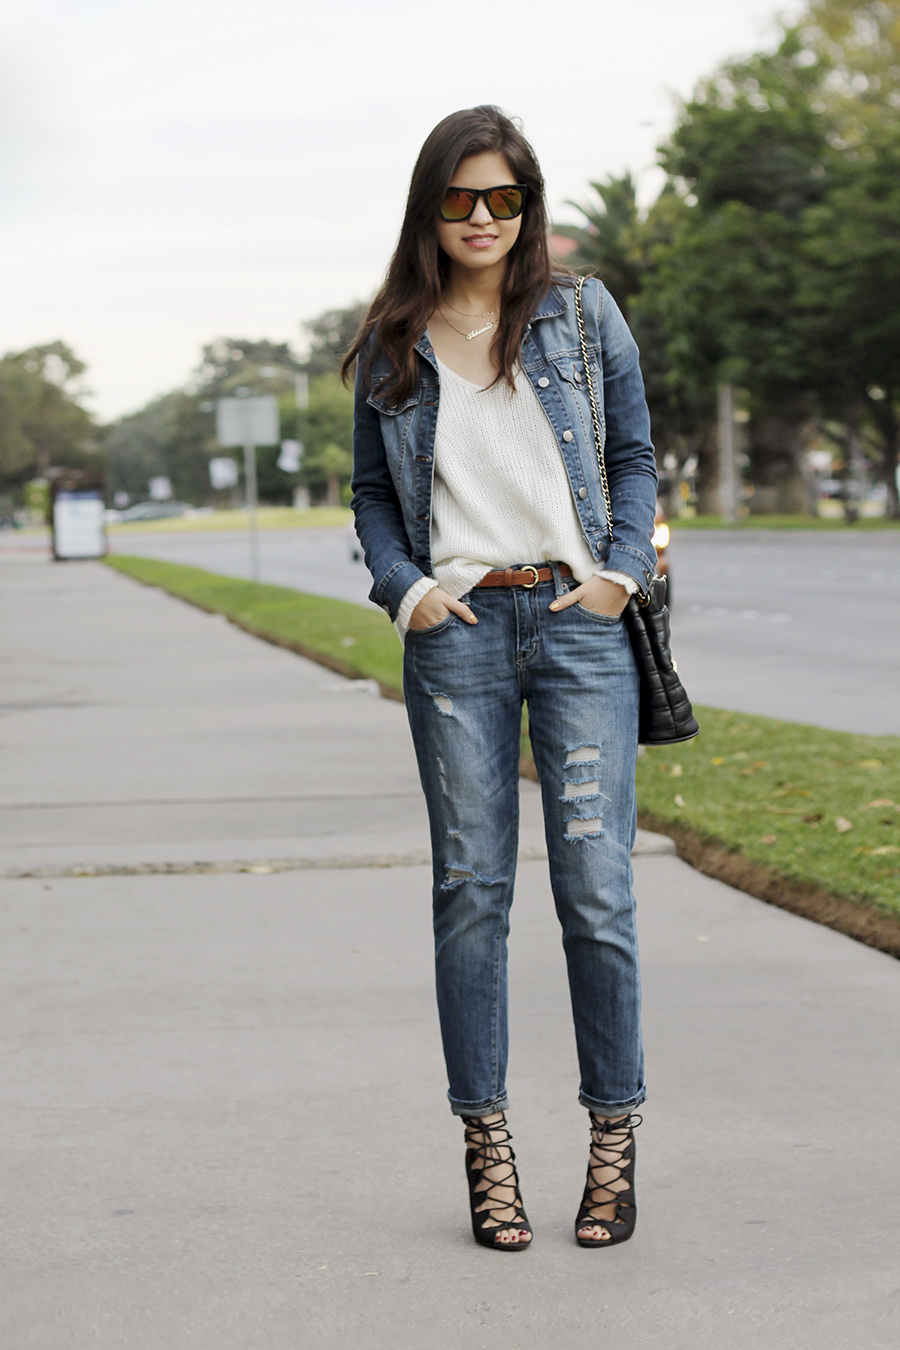 Denim Jeans With Denim Jacket - Coat Nj